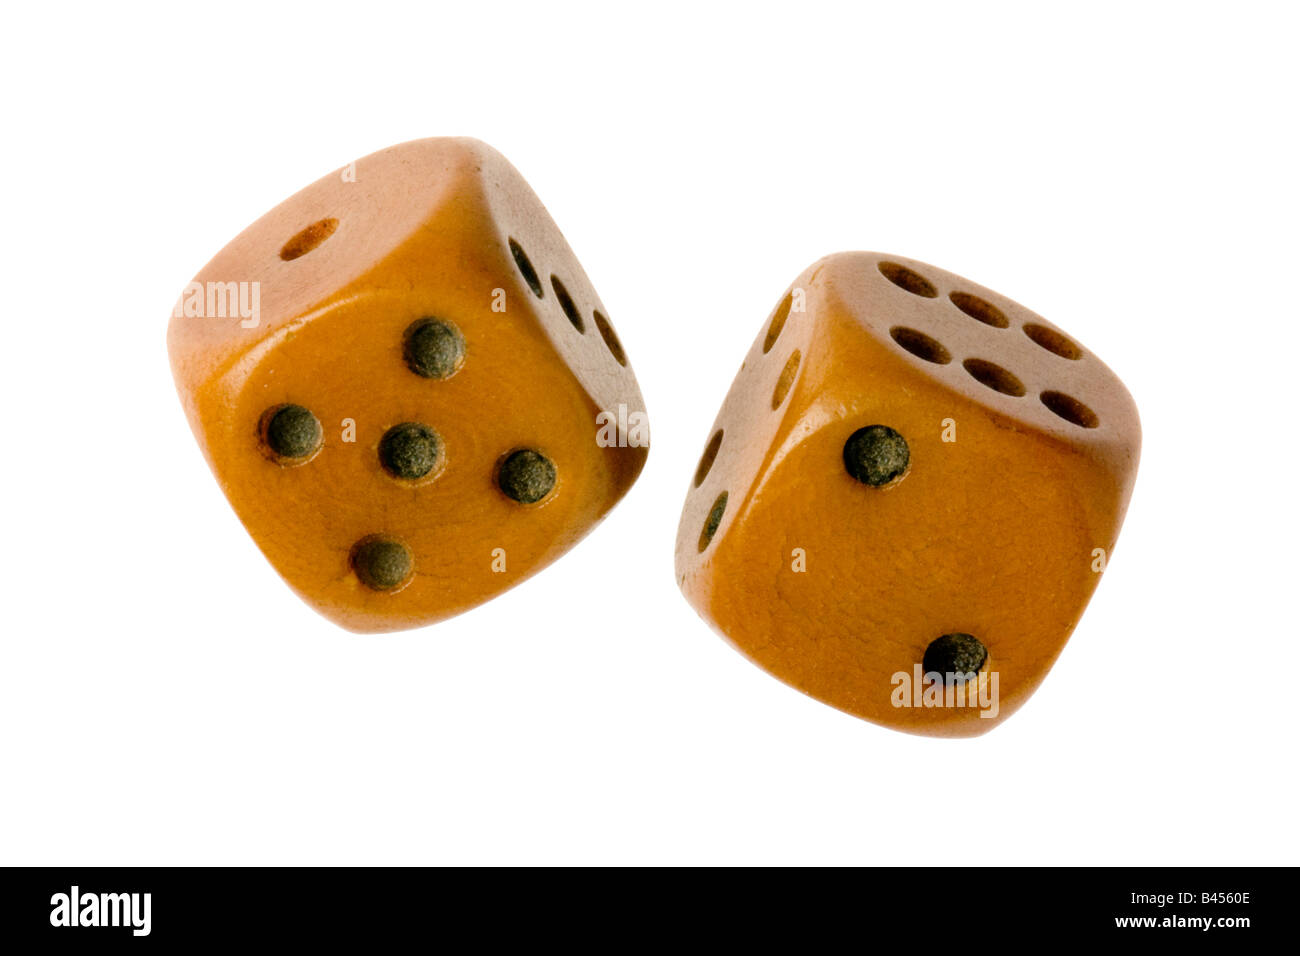 old pair of dice on white - Stock Image